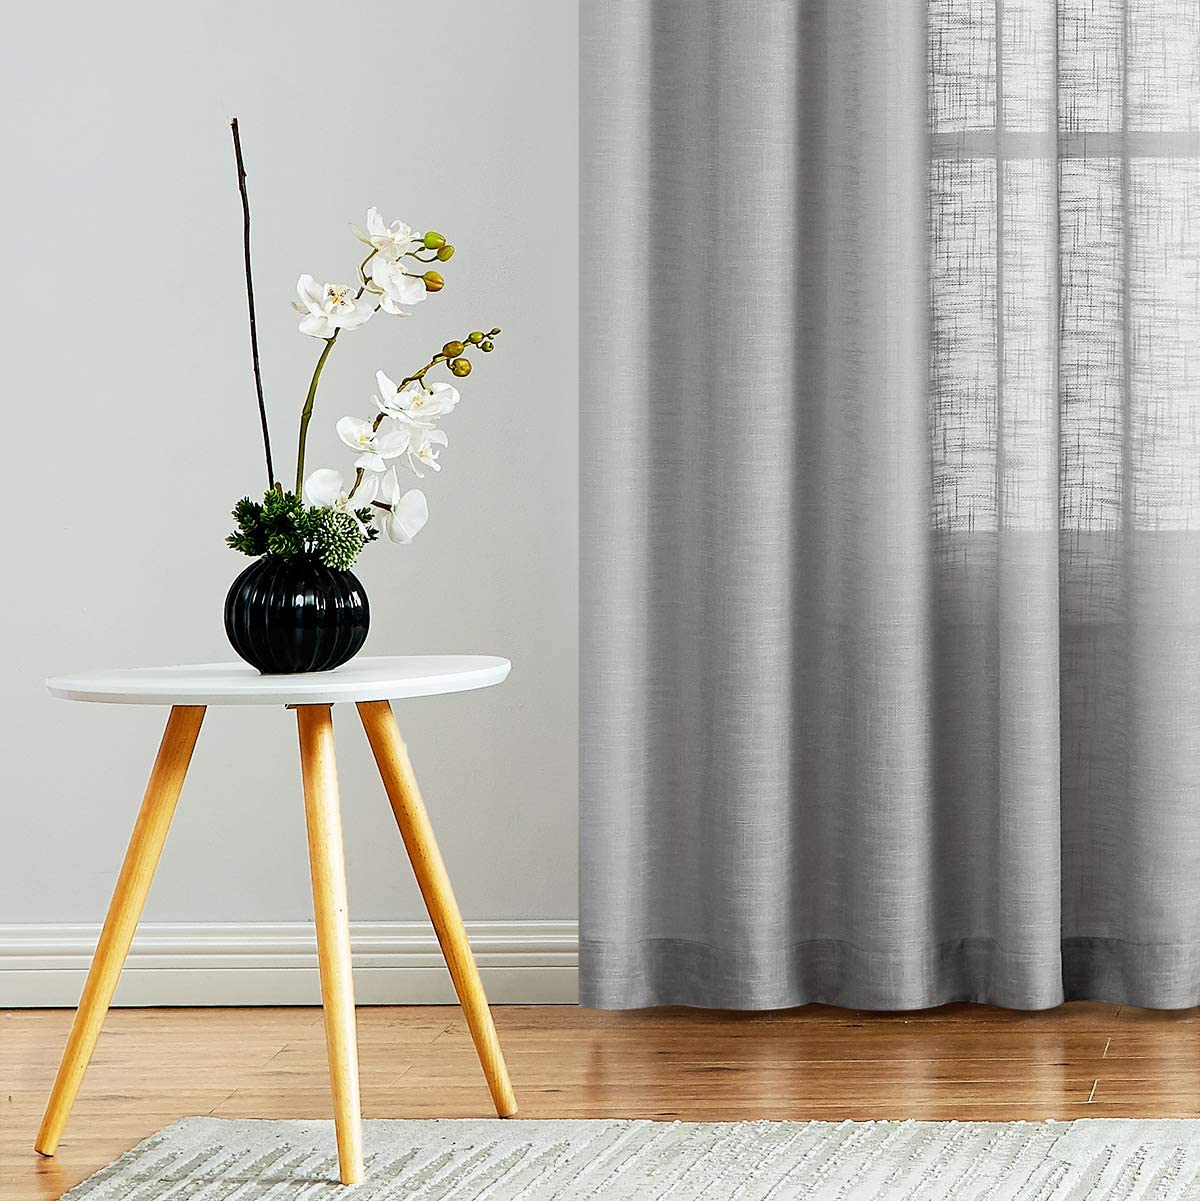 Fmfunctex Semi-Sheer Curtains for Living Room Soft Grey 108-inches Extra Long Rich Linen Texture Weave Solid Sheer Drapes for Hotel Bedroom Windows Wrinkle Free 52 w 2 Panels Rod Pocket